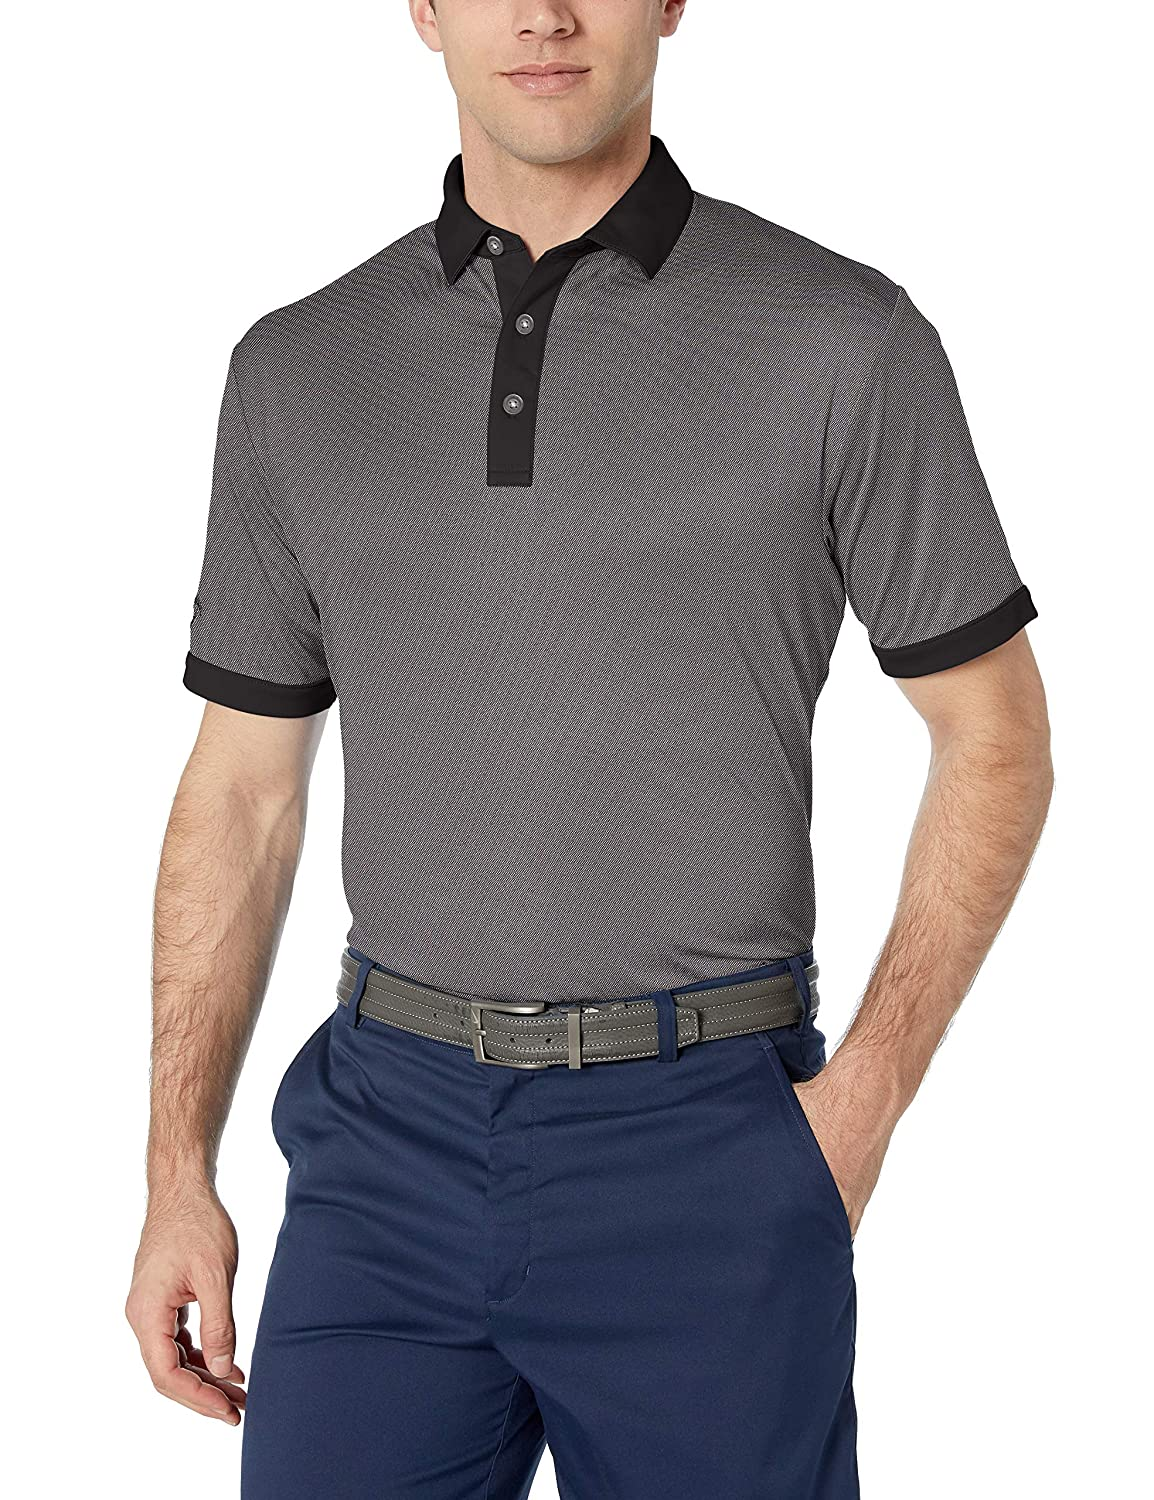 Callaway Basics Short Sleeve Oxford Polo Shirt